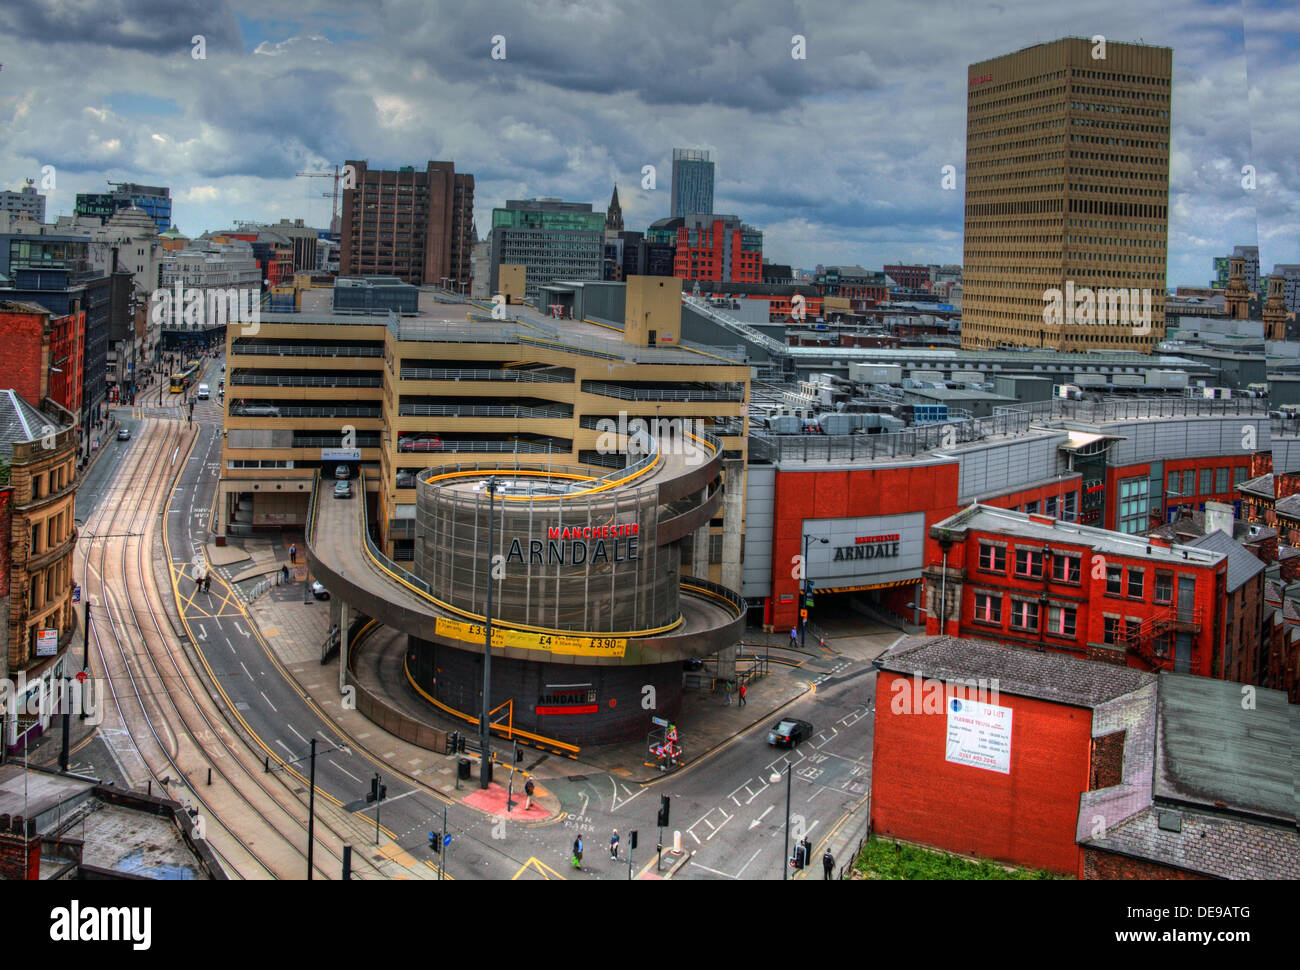 View over Manchester city centre / Arndale looking south, NW England, UK - Stock Image